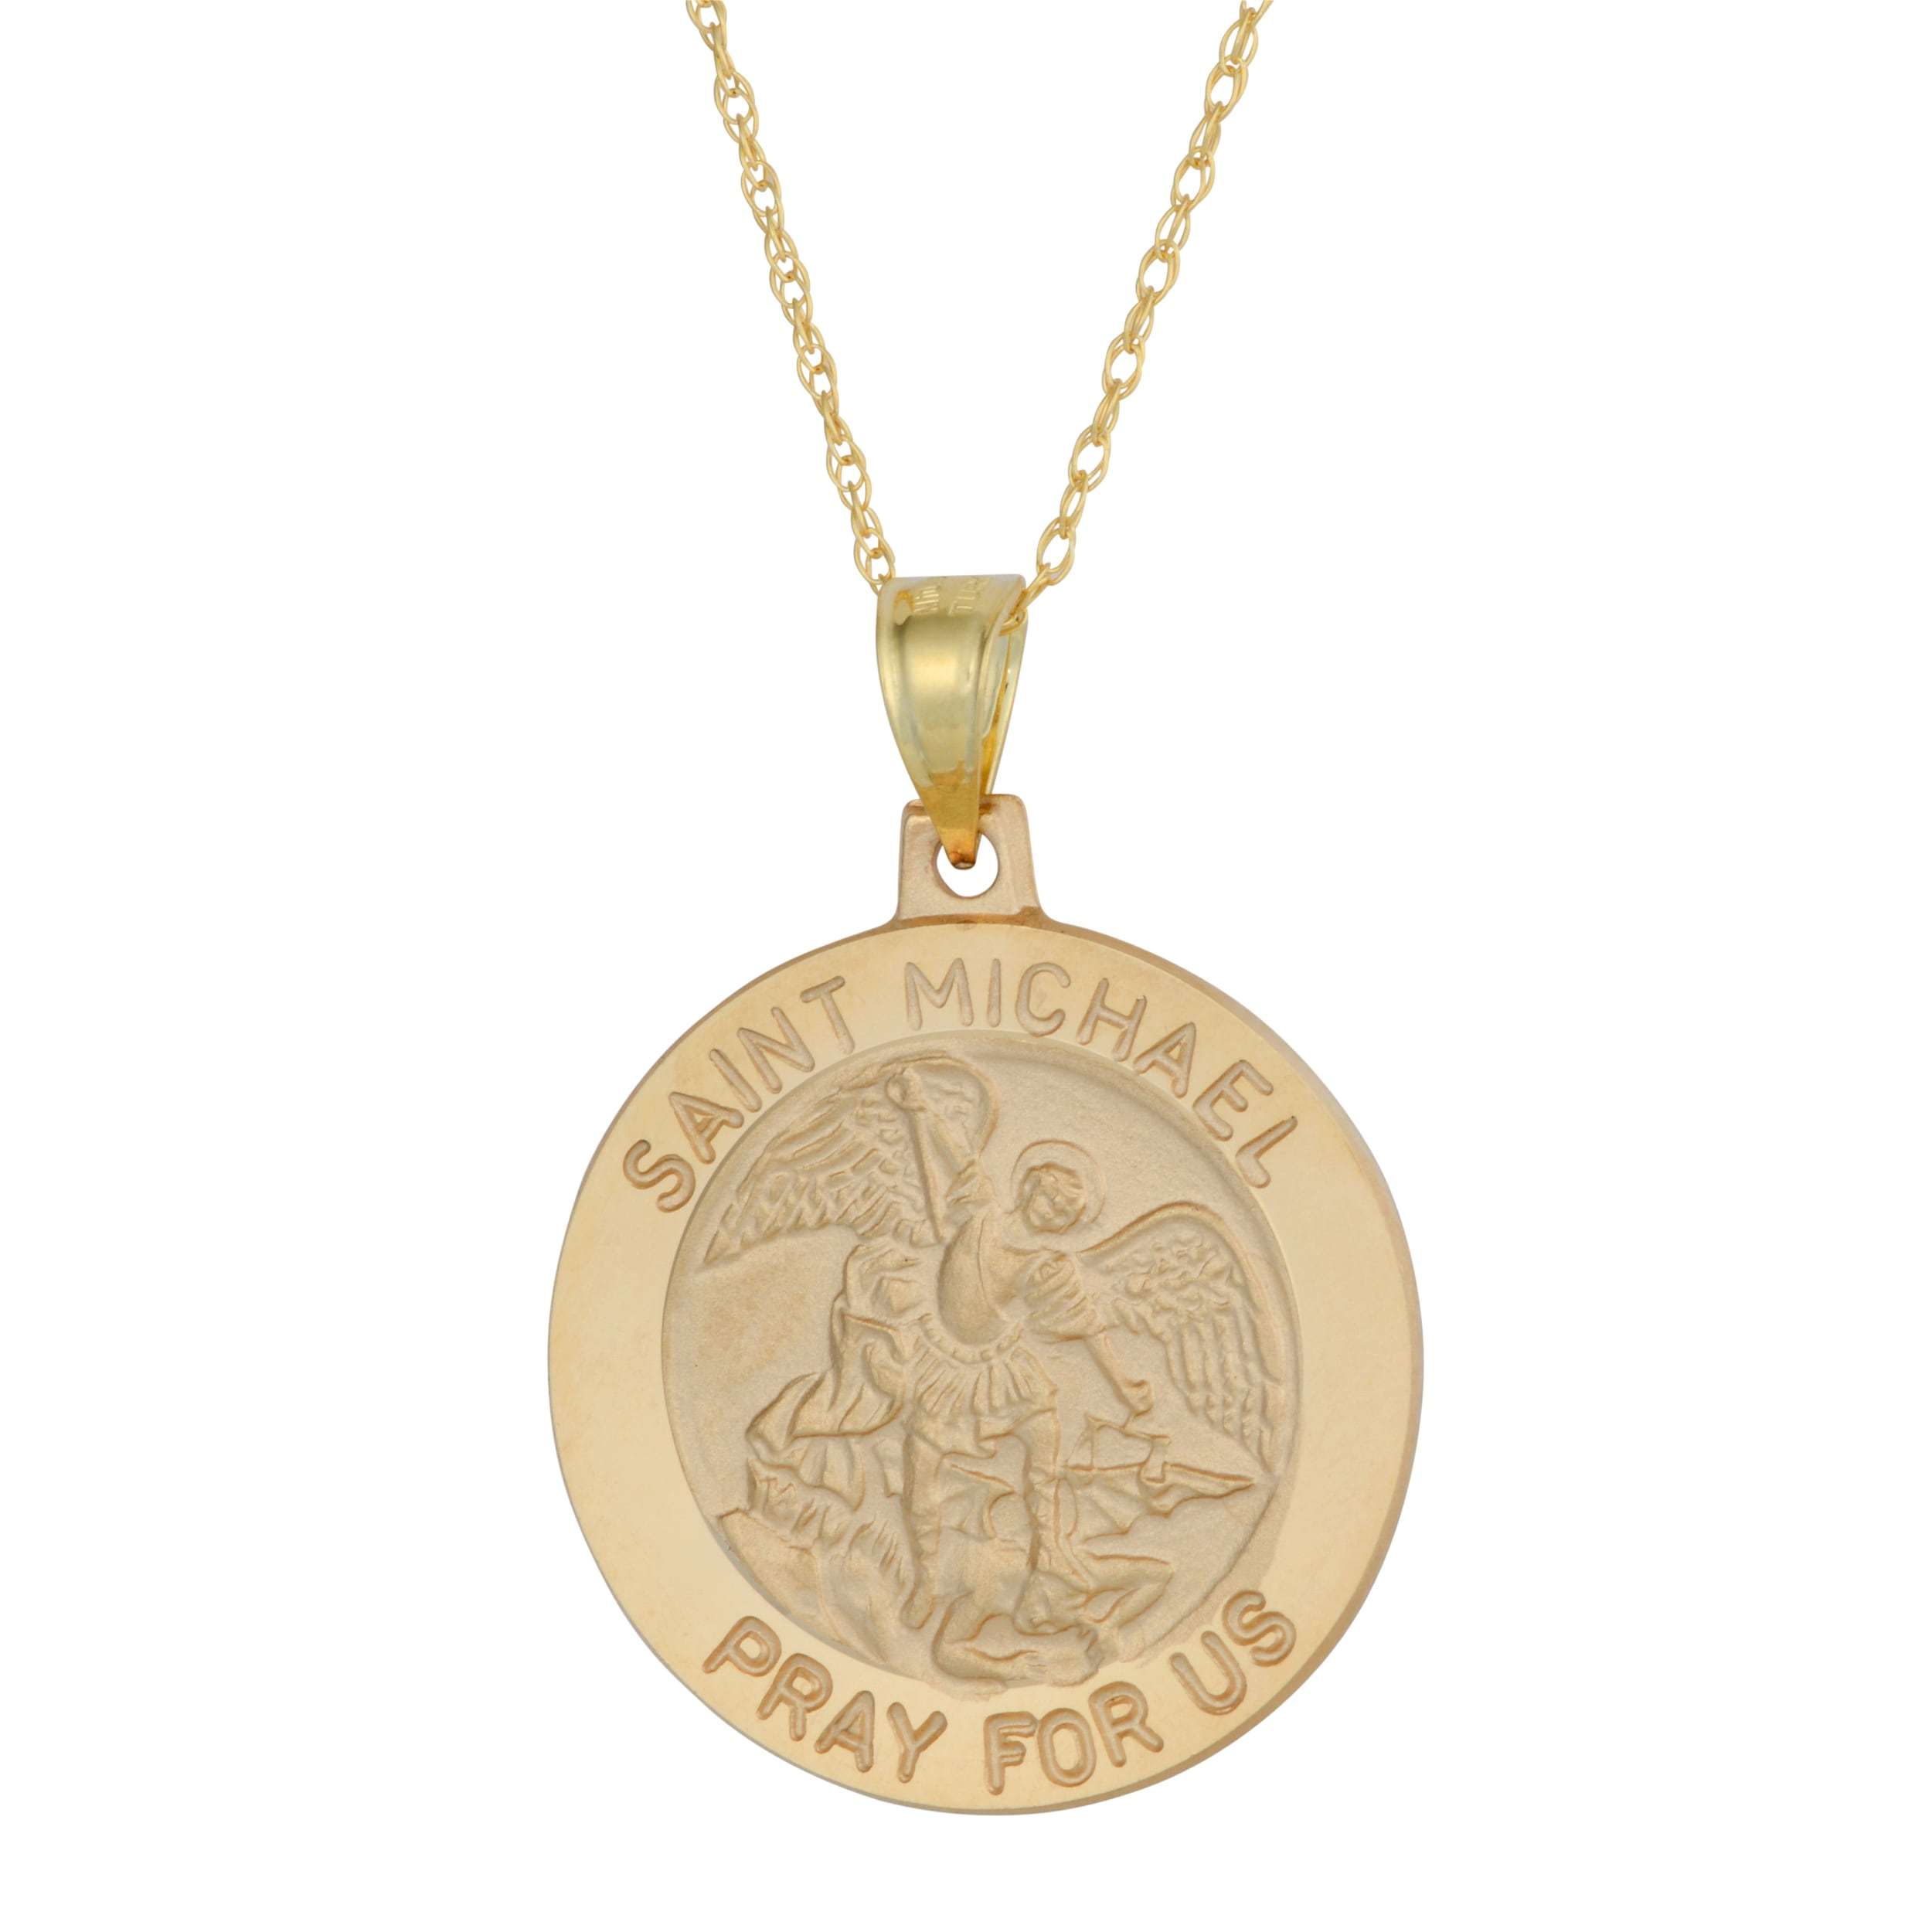 brother medal du andre medaille gold fr pendant saint andr en ronde frere l avec oratoire m re joseph st inscription daille produit de